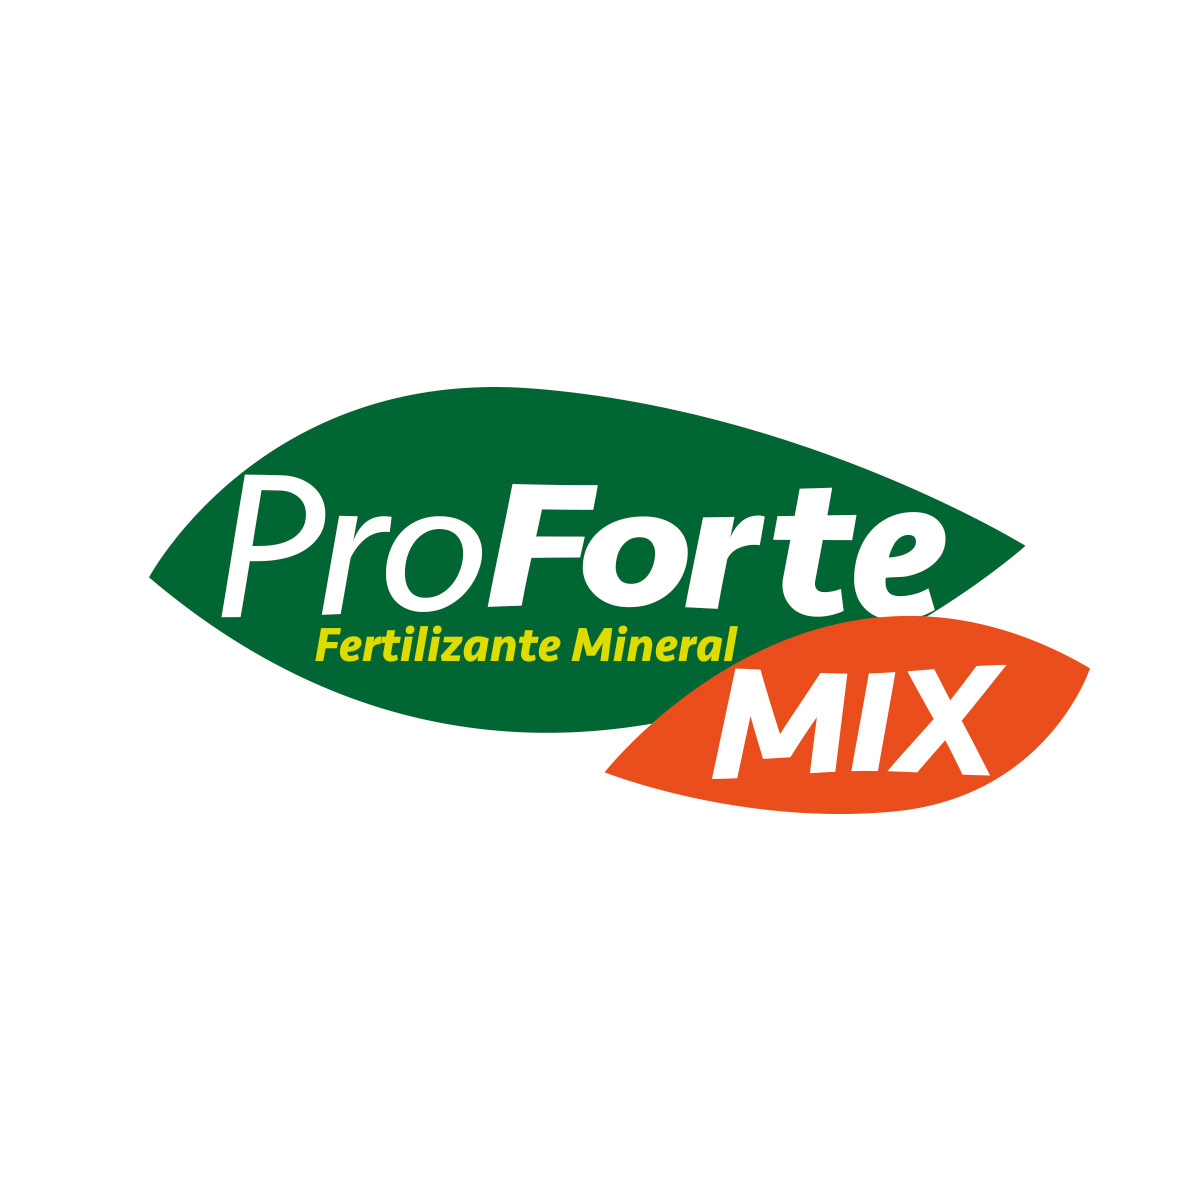 logomarca - proforte mix